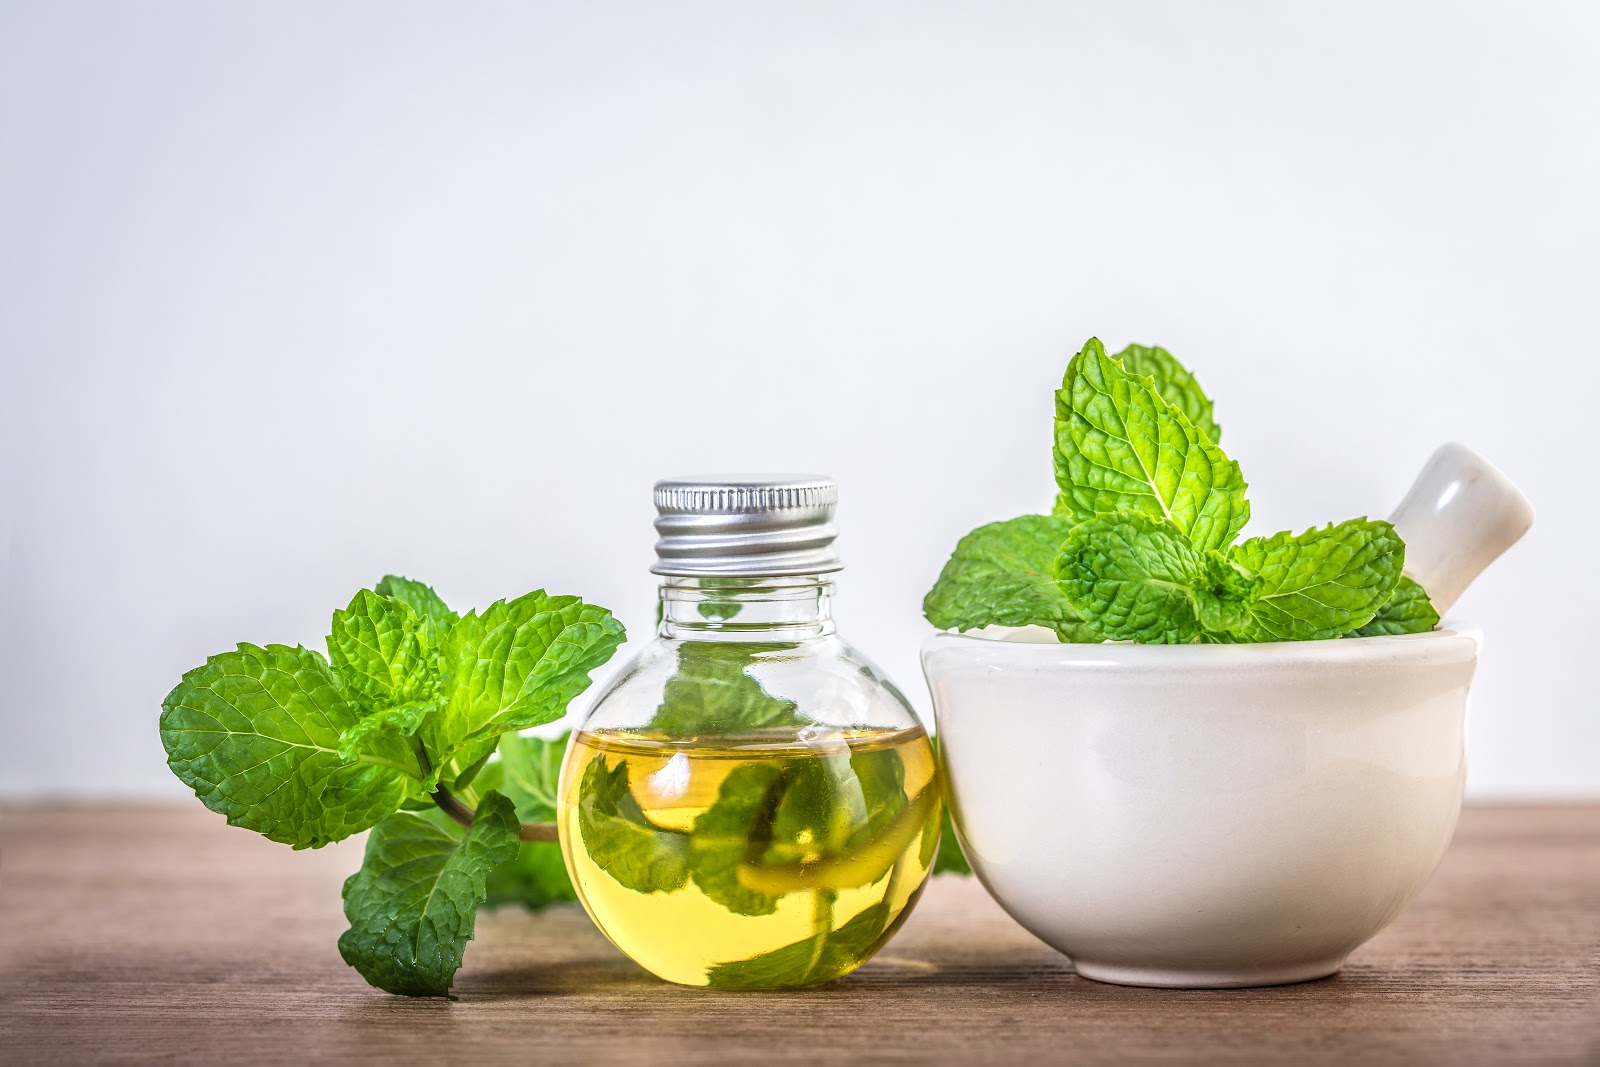 How to get rid of gas pain: mint leaves in a spice grinder and oil bottle